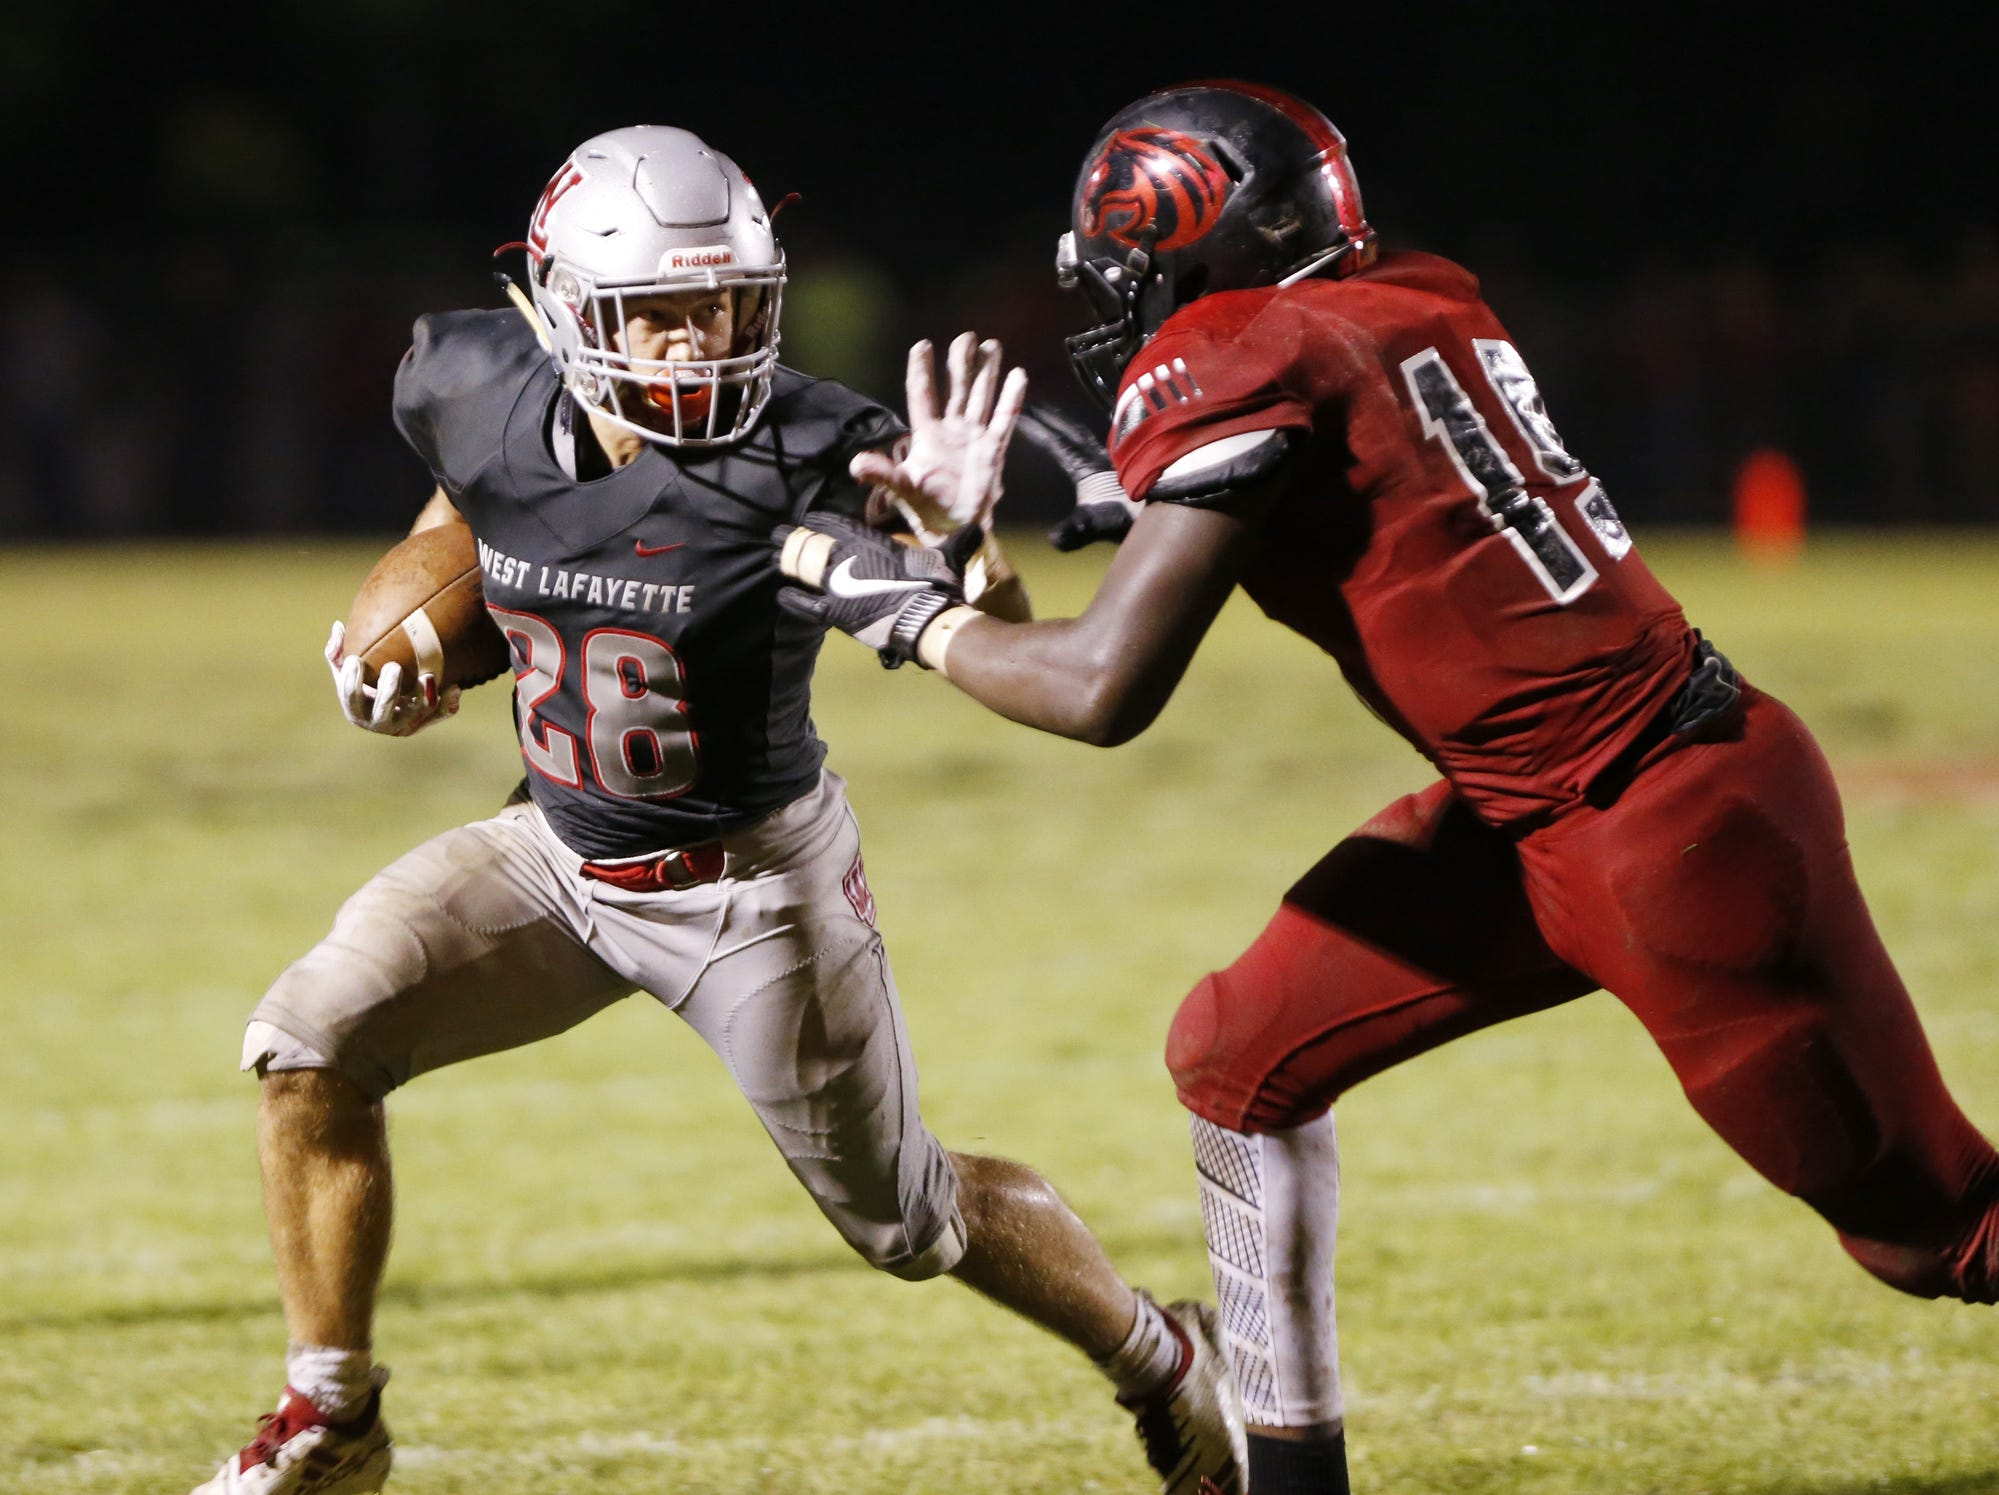 Spencer Blankman of West Lafayette with a stiff arm for Xavier Detrick on a carry Friday, August 17, 2018, at Gordon Straley Field in West Lafayette. West Lafayette defeated Jeff 38-29.